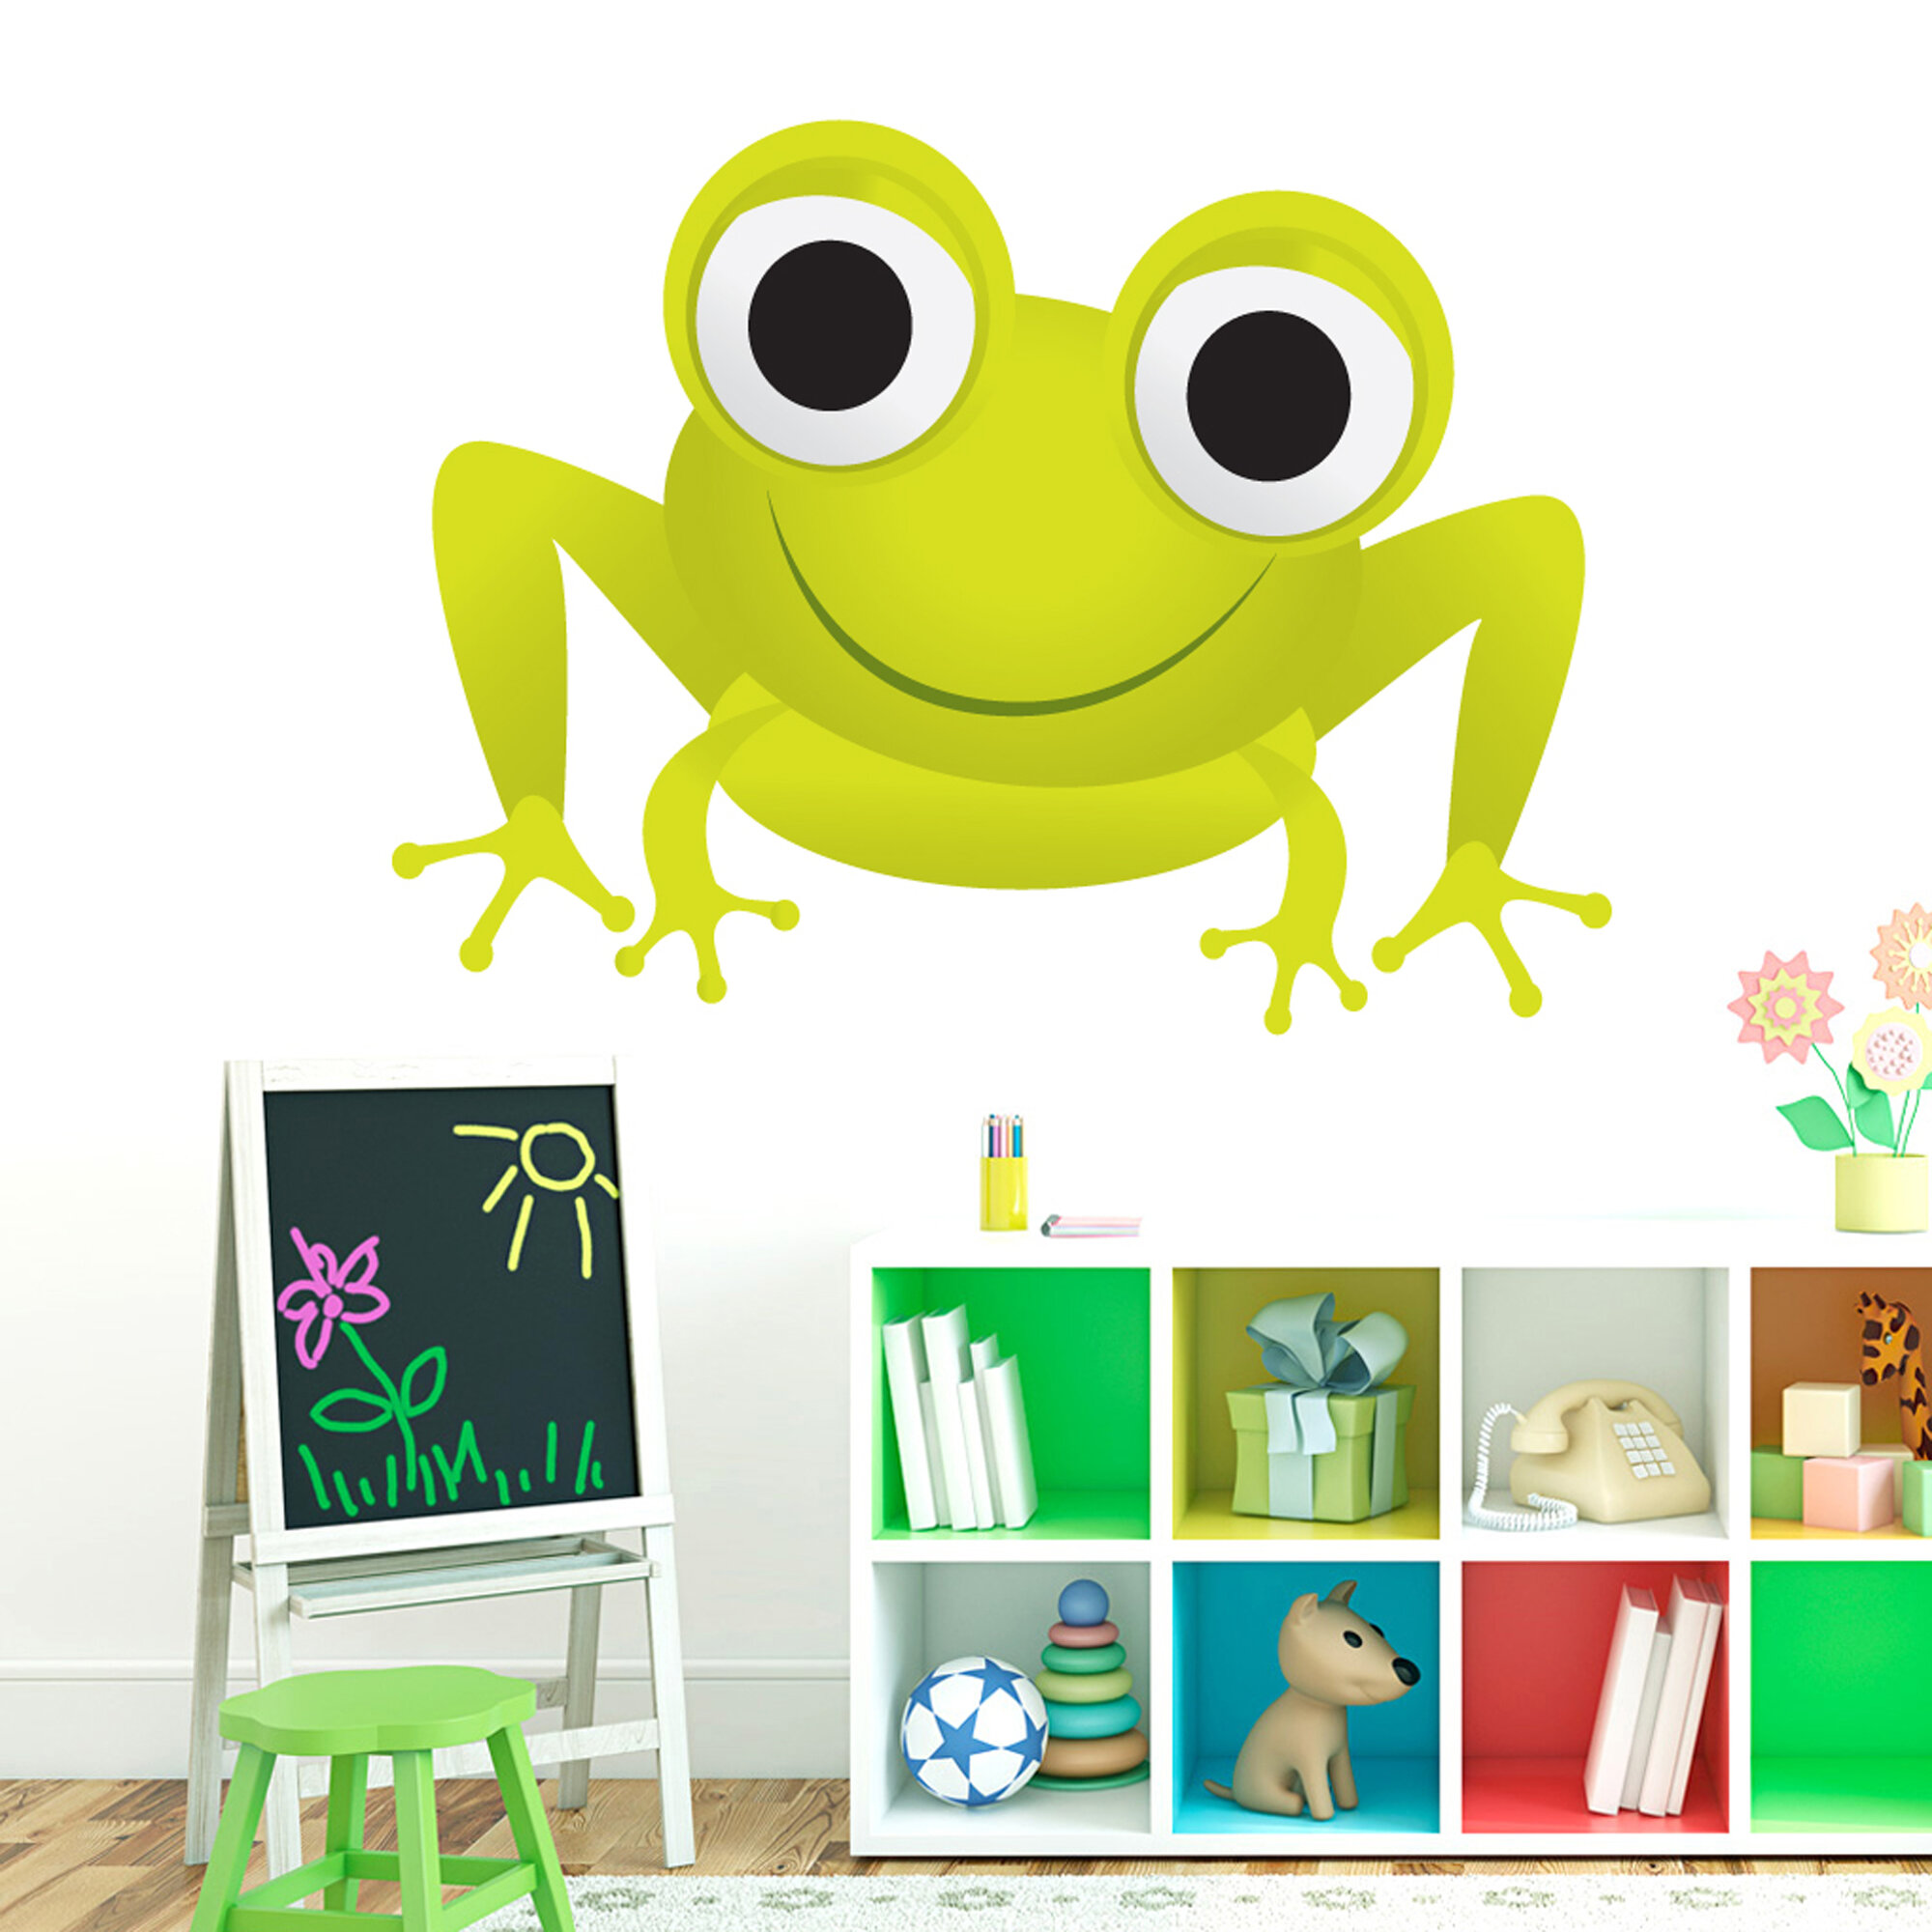 Beautiful Frog Bathroom Wall Decor Pictures Inspiration - The Wall ...